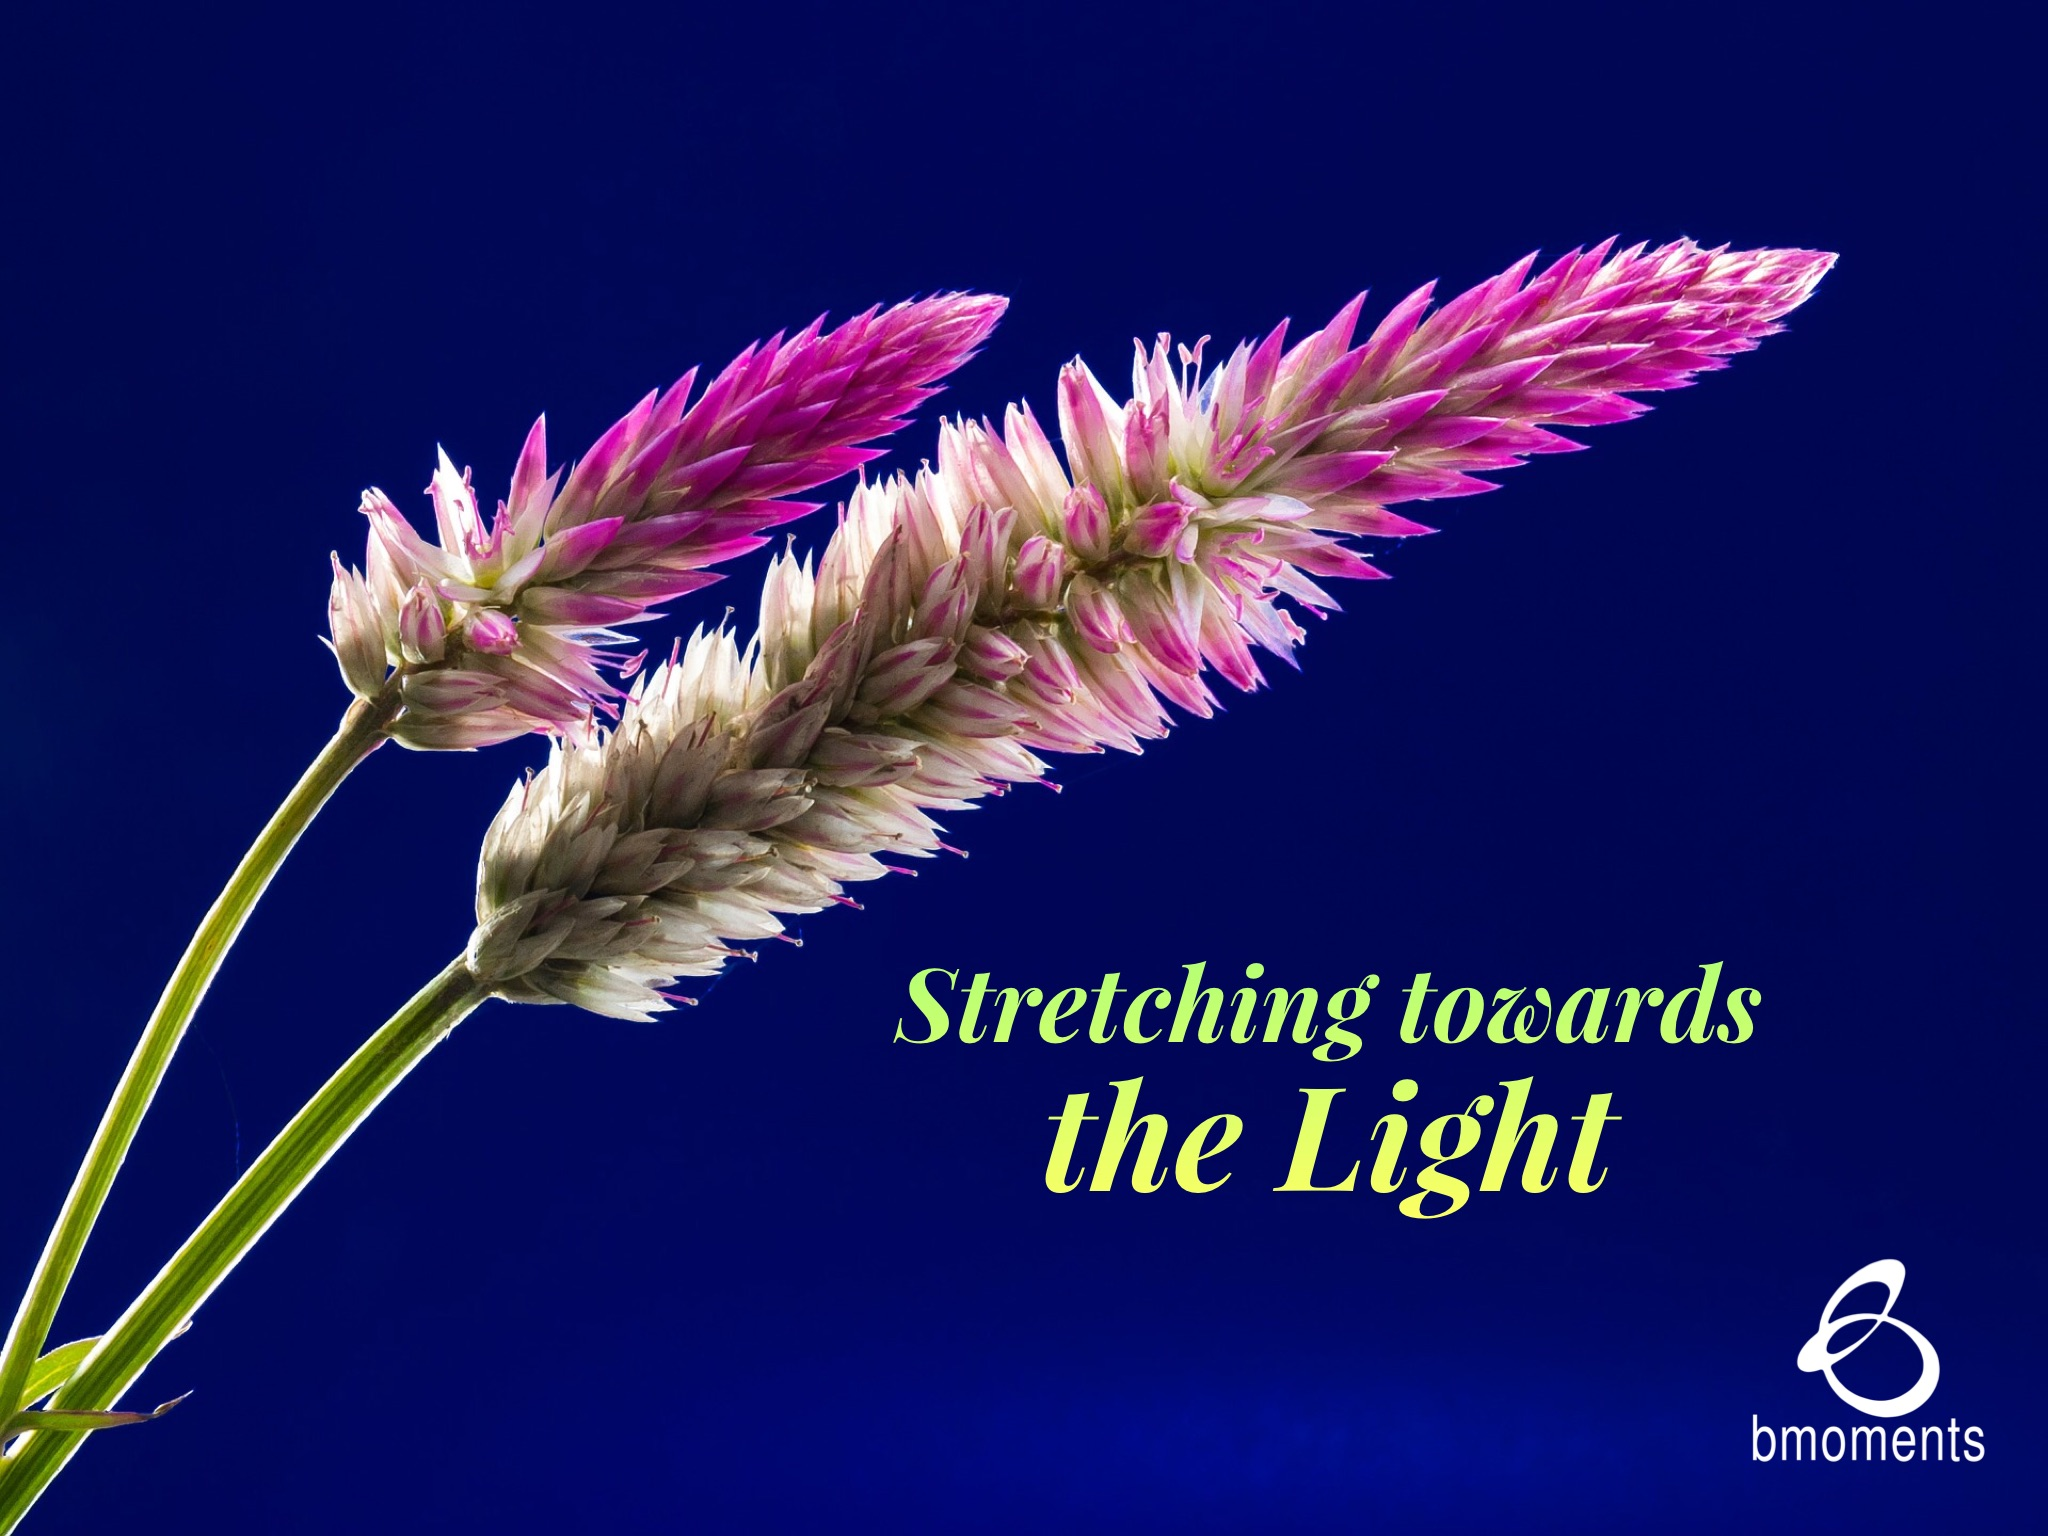 Stretching towards the Light, Springtime